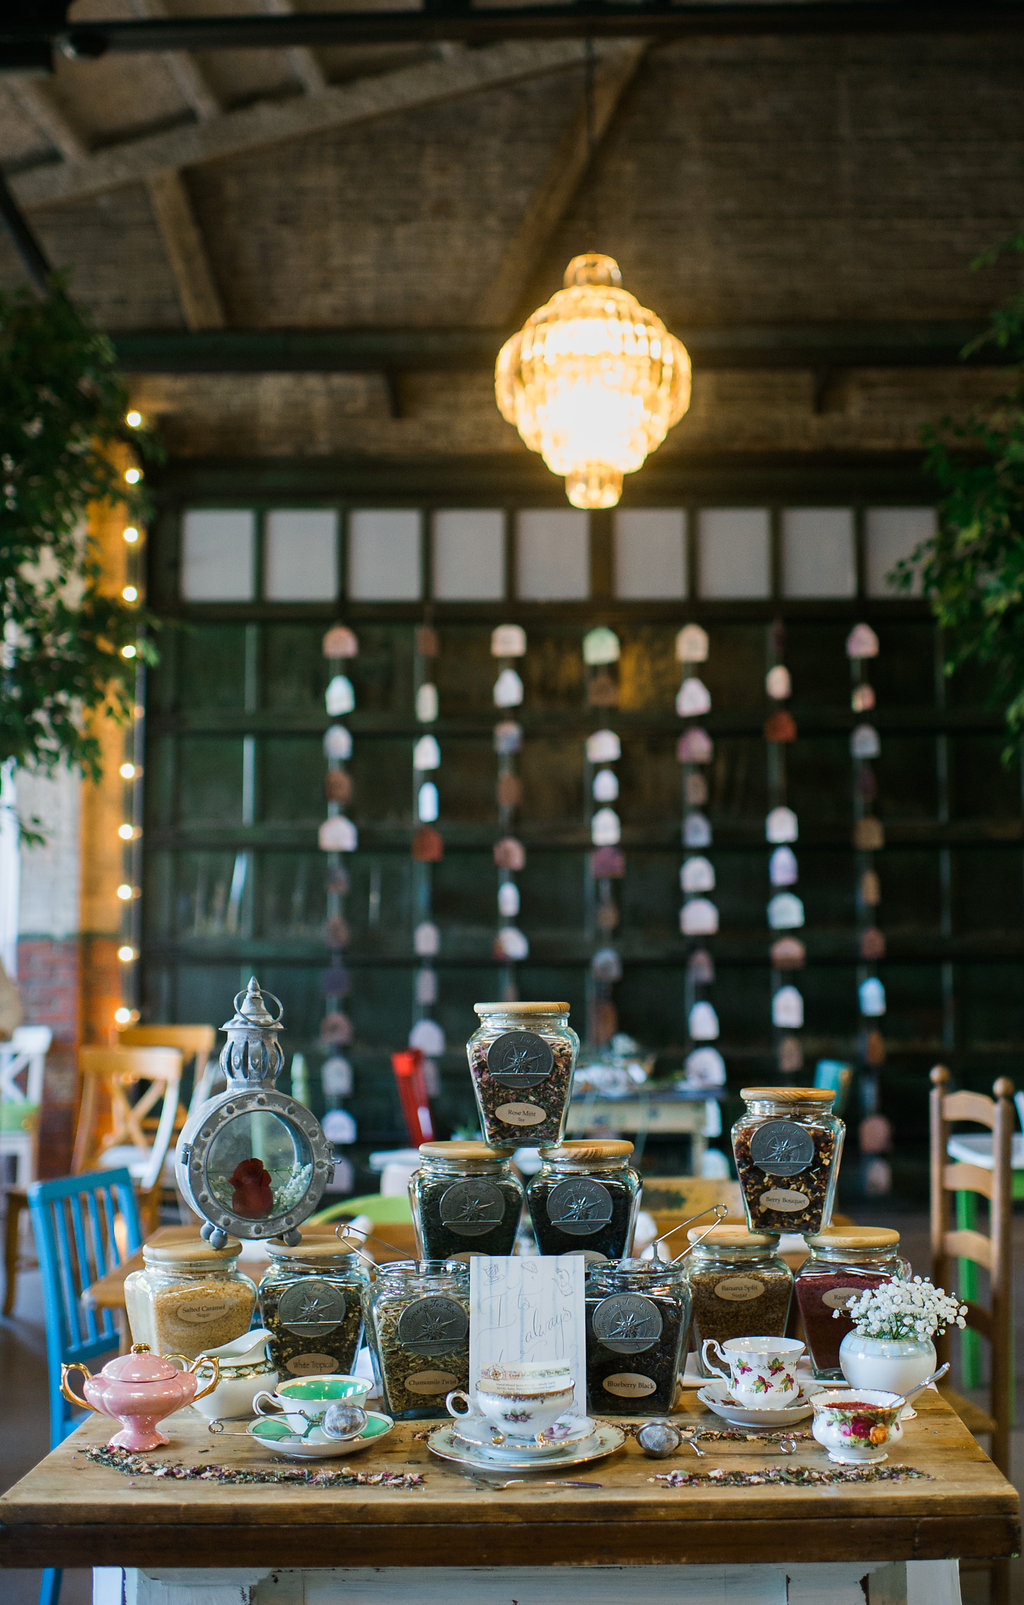 alice-in-wonderland-wedding-rach-lea-photography-rach-loves-troy-photography-ivory-and-beau-bridal-boutique-soho-cafe-savannah-wedding-venue-savannah-weddings-savannah-wedding-planner-sarah-seven-golden-lights-blushing-forever-september-15.jpg